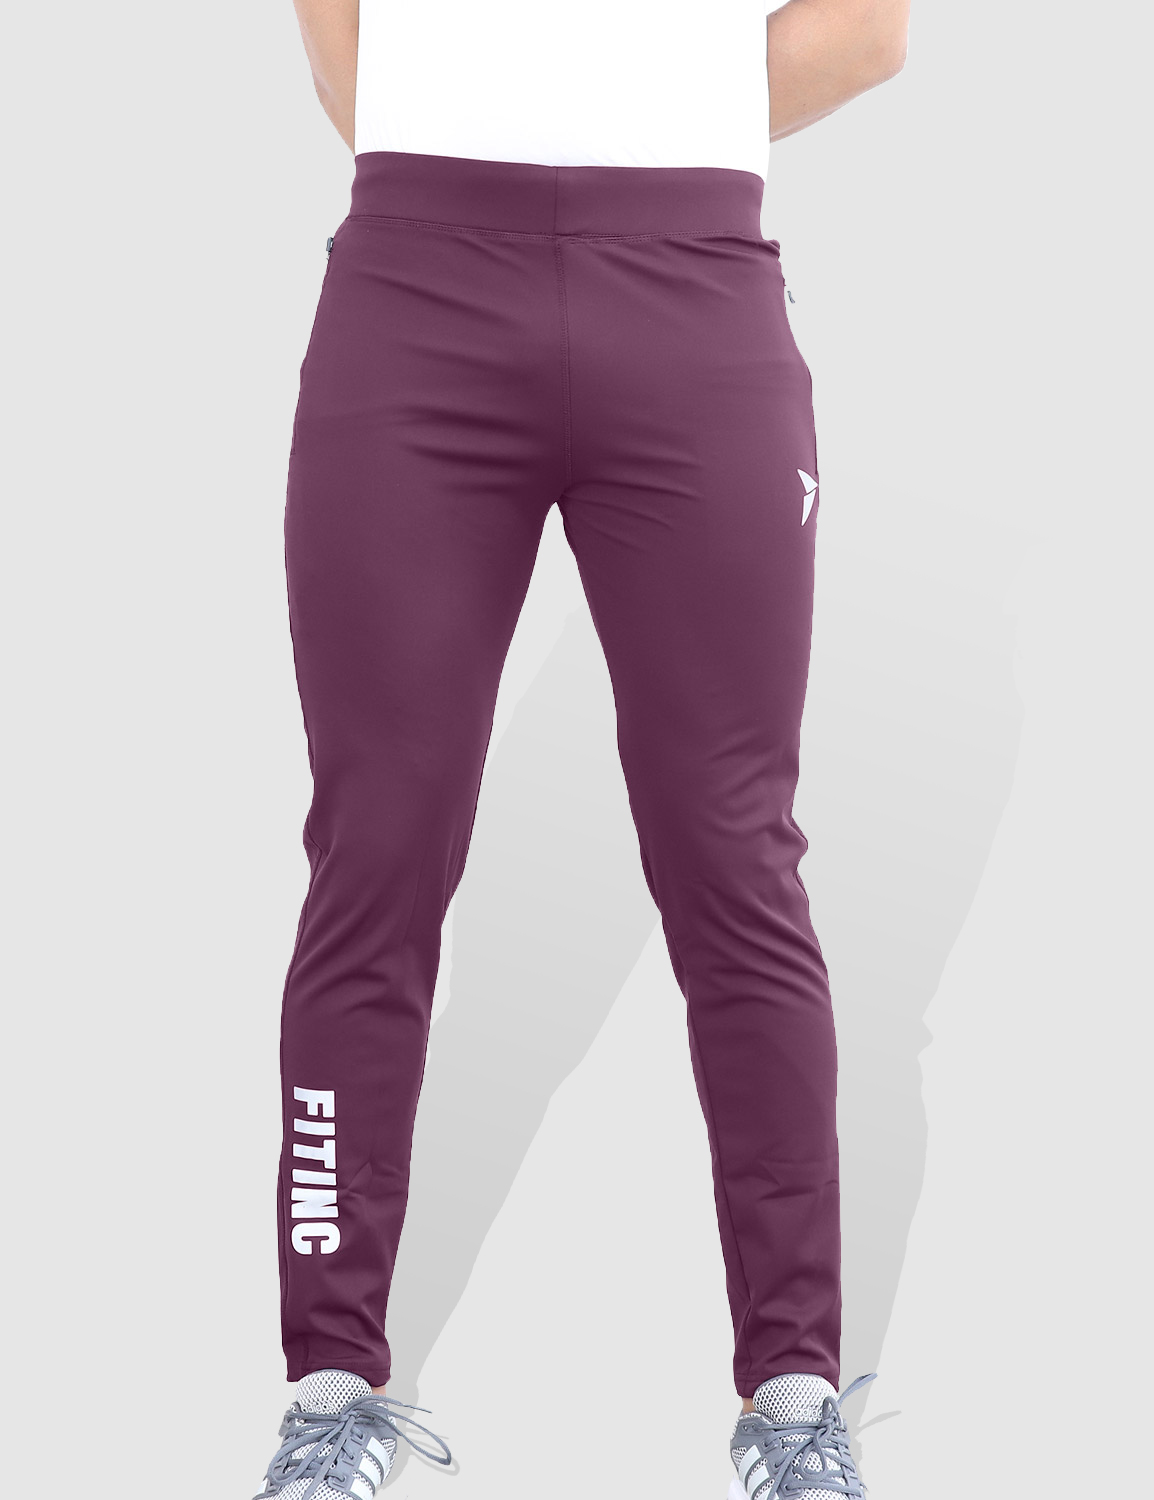 Fitinc | Fitinc Slim Fit Maroon Track Pant for Gym & Yoga with Zipper Pockets